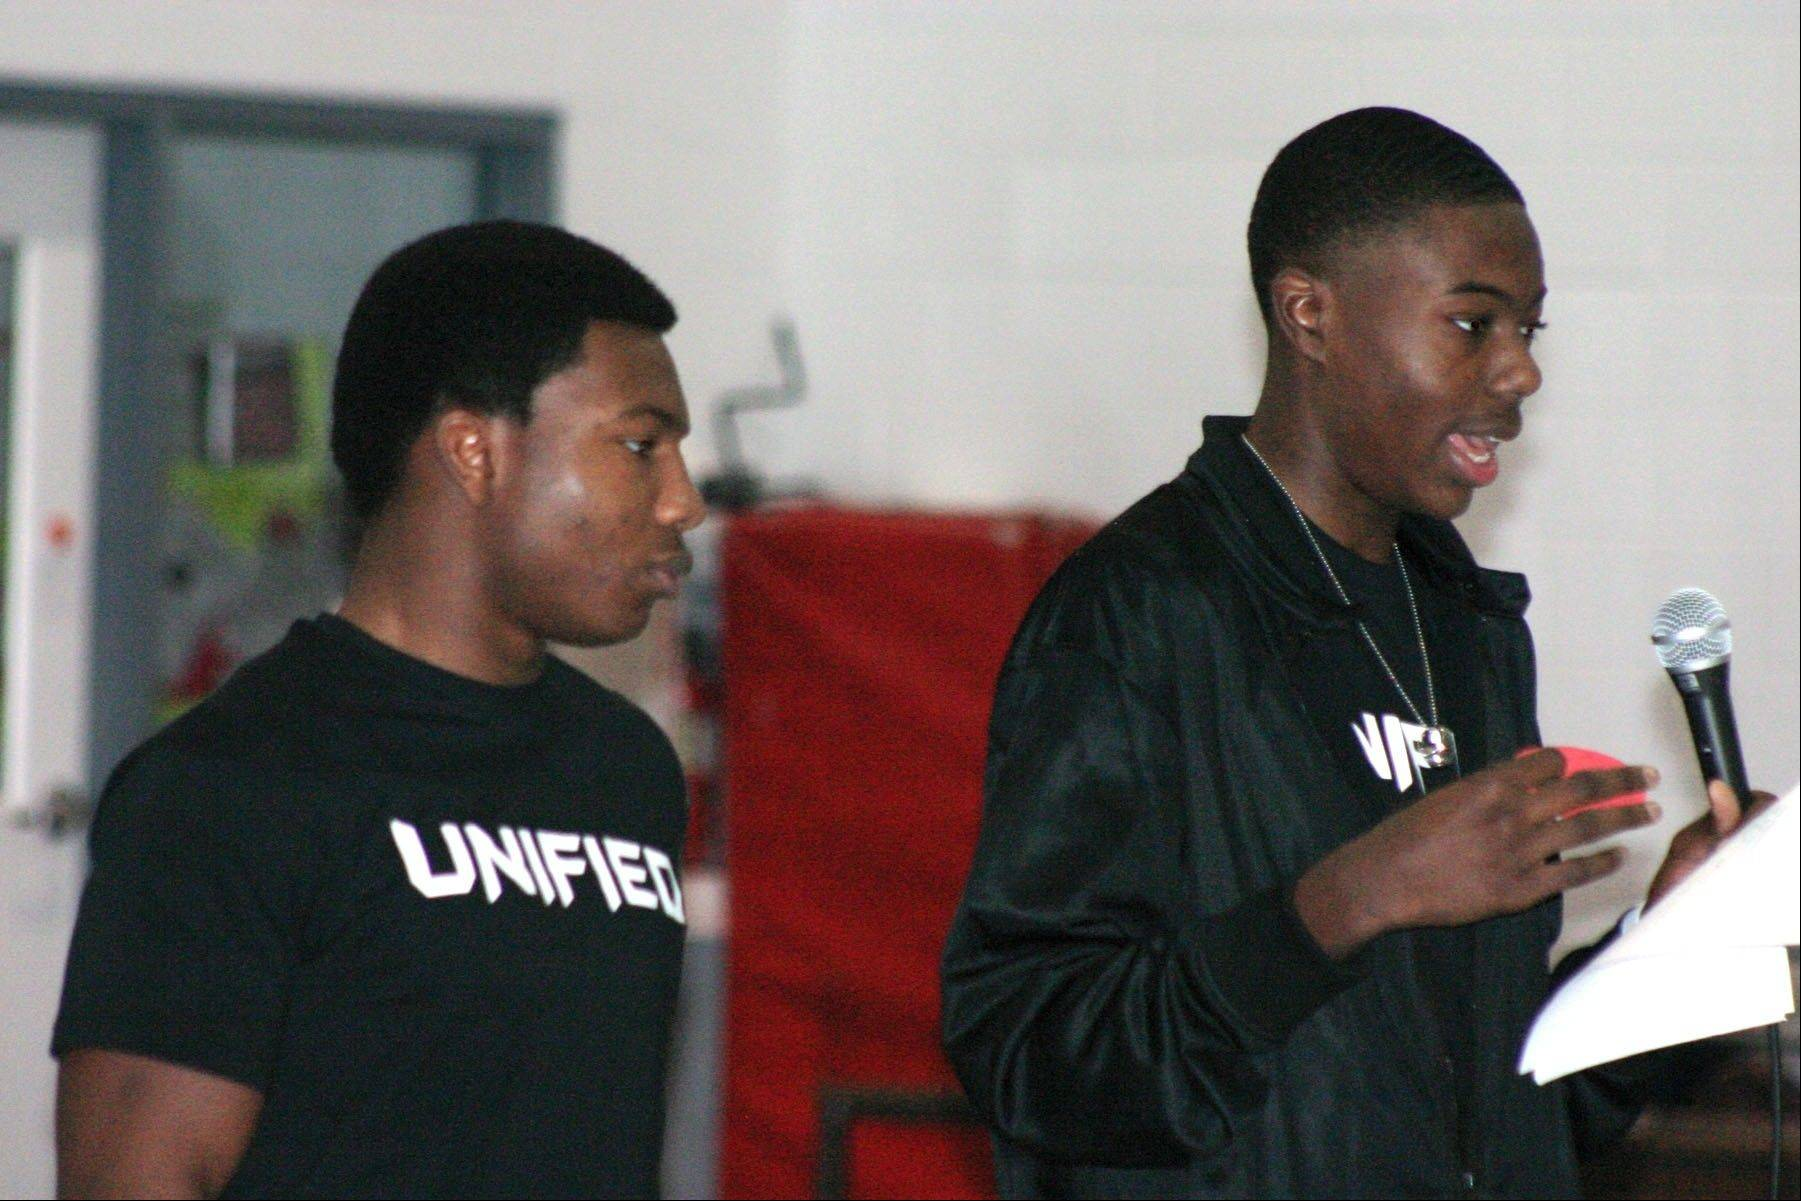 Mooseheart junior Junior Smith, left, and senior Jesse Mennis give instructions to their classmates prior to a Jan. 18 anti-bullying workshop held by all the campus' high school students. Smith and Mennis are part of the school's PR Council, which helped organize the event.